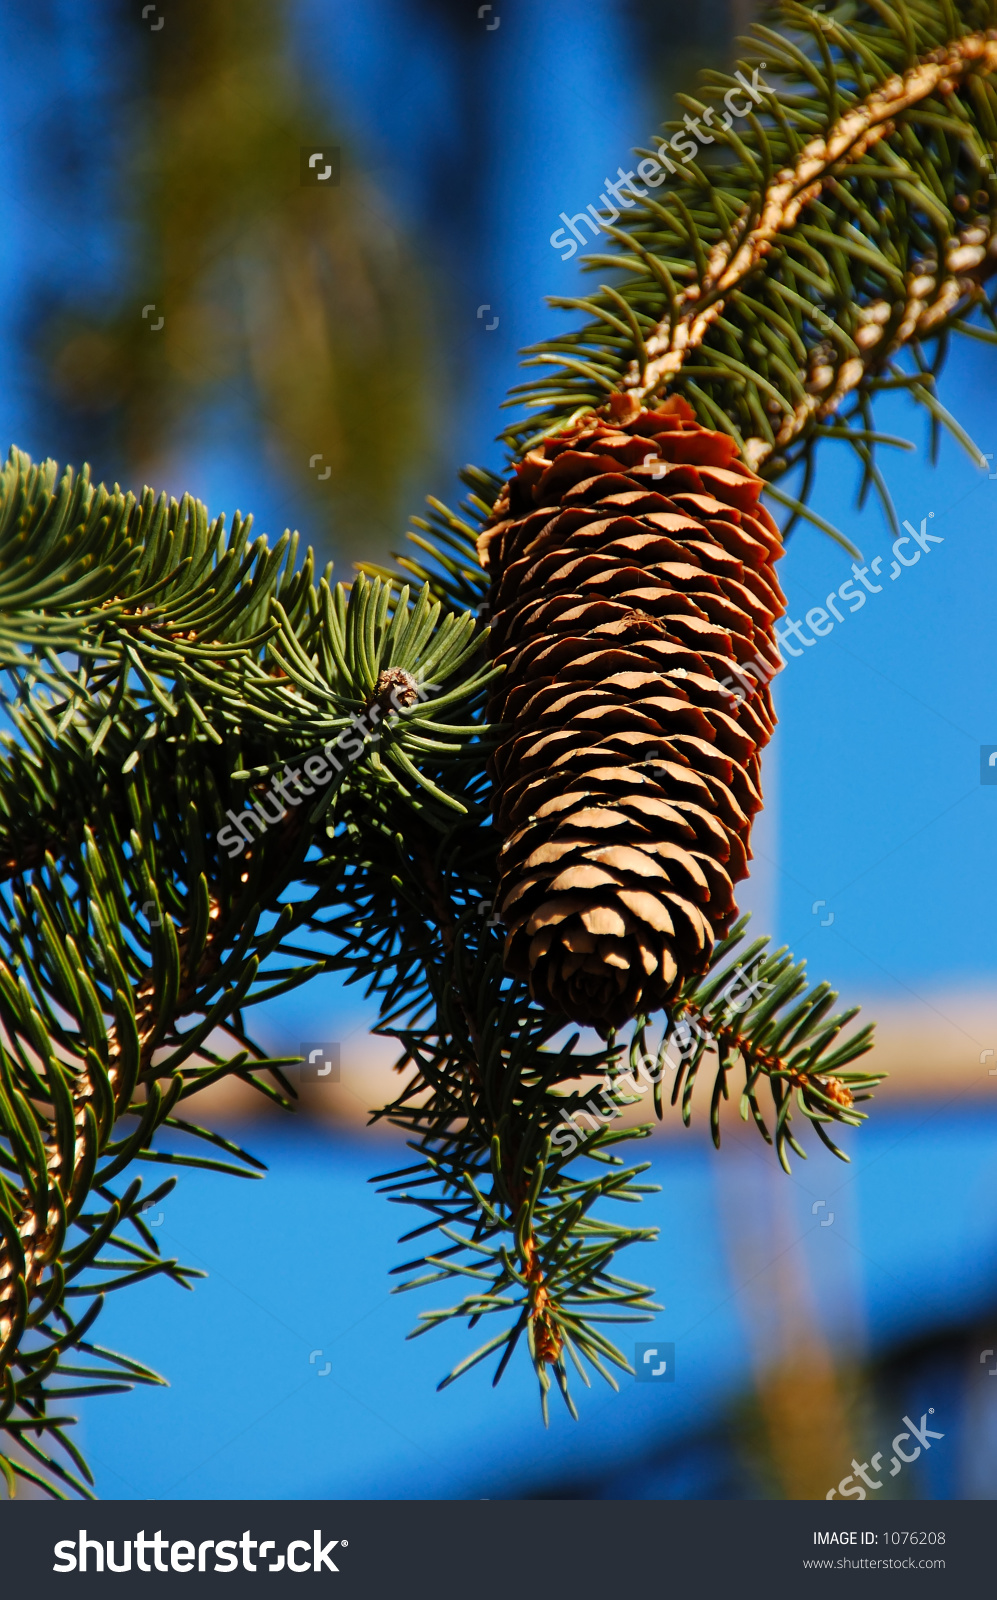 Pinecone On The Drooping Branches Of A Weeping White Pine.